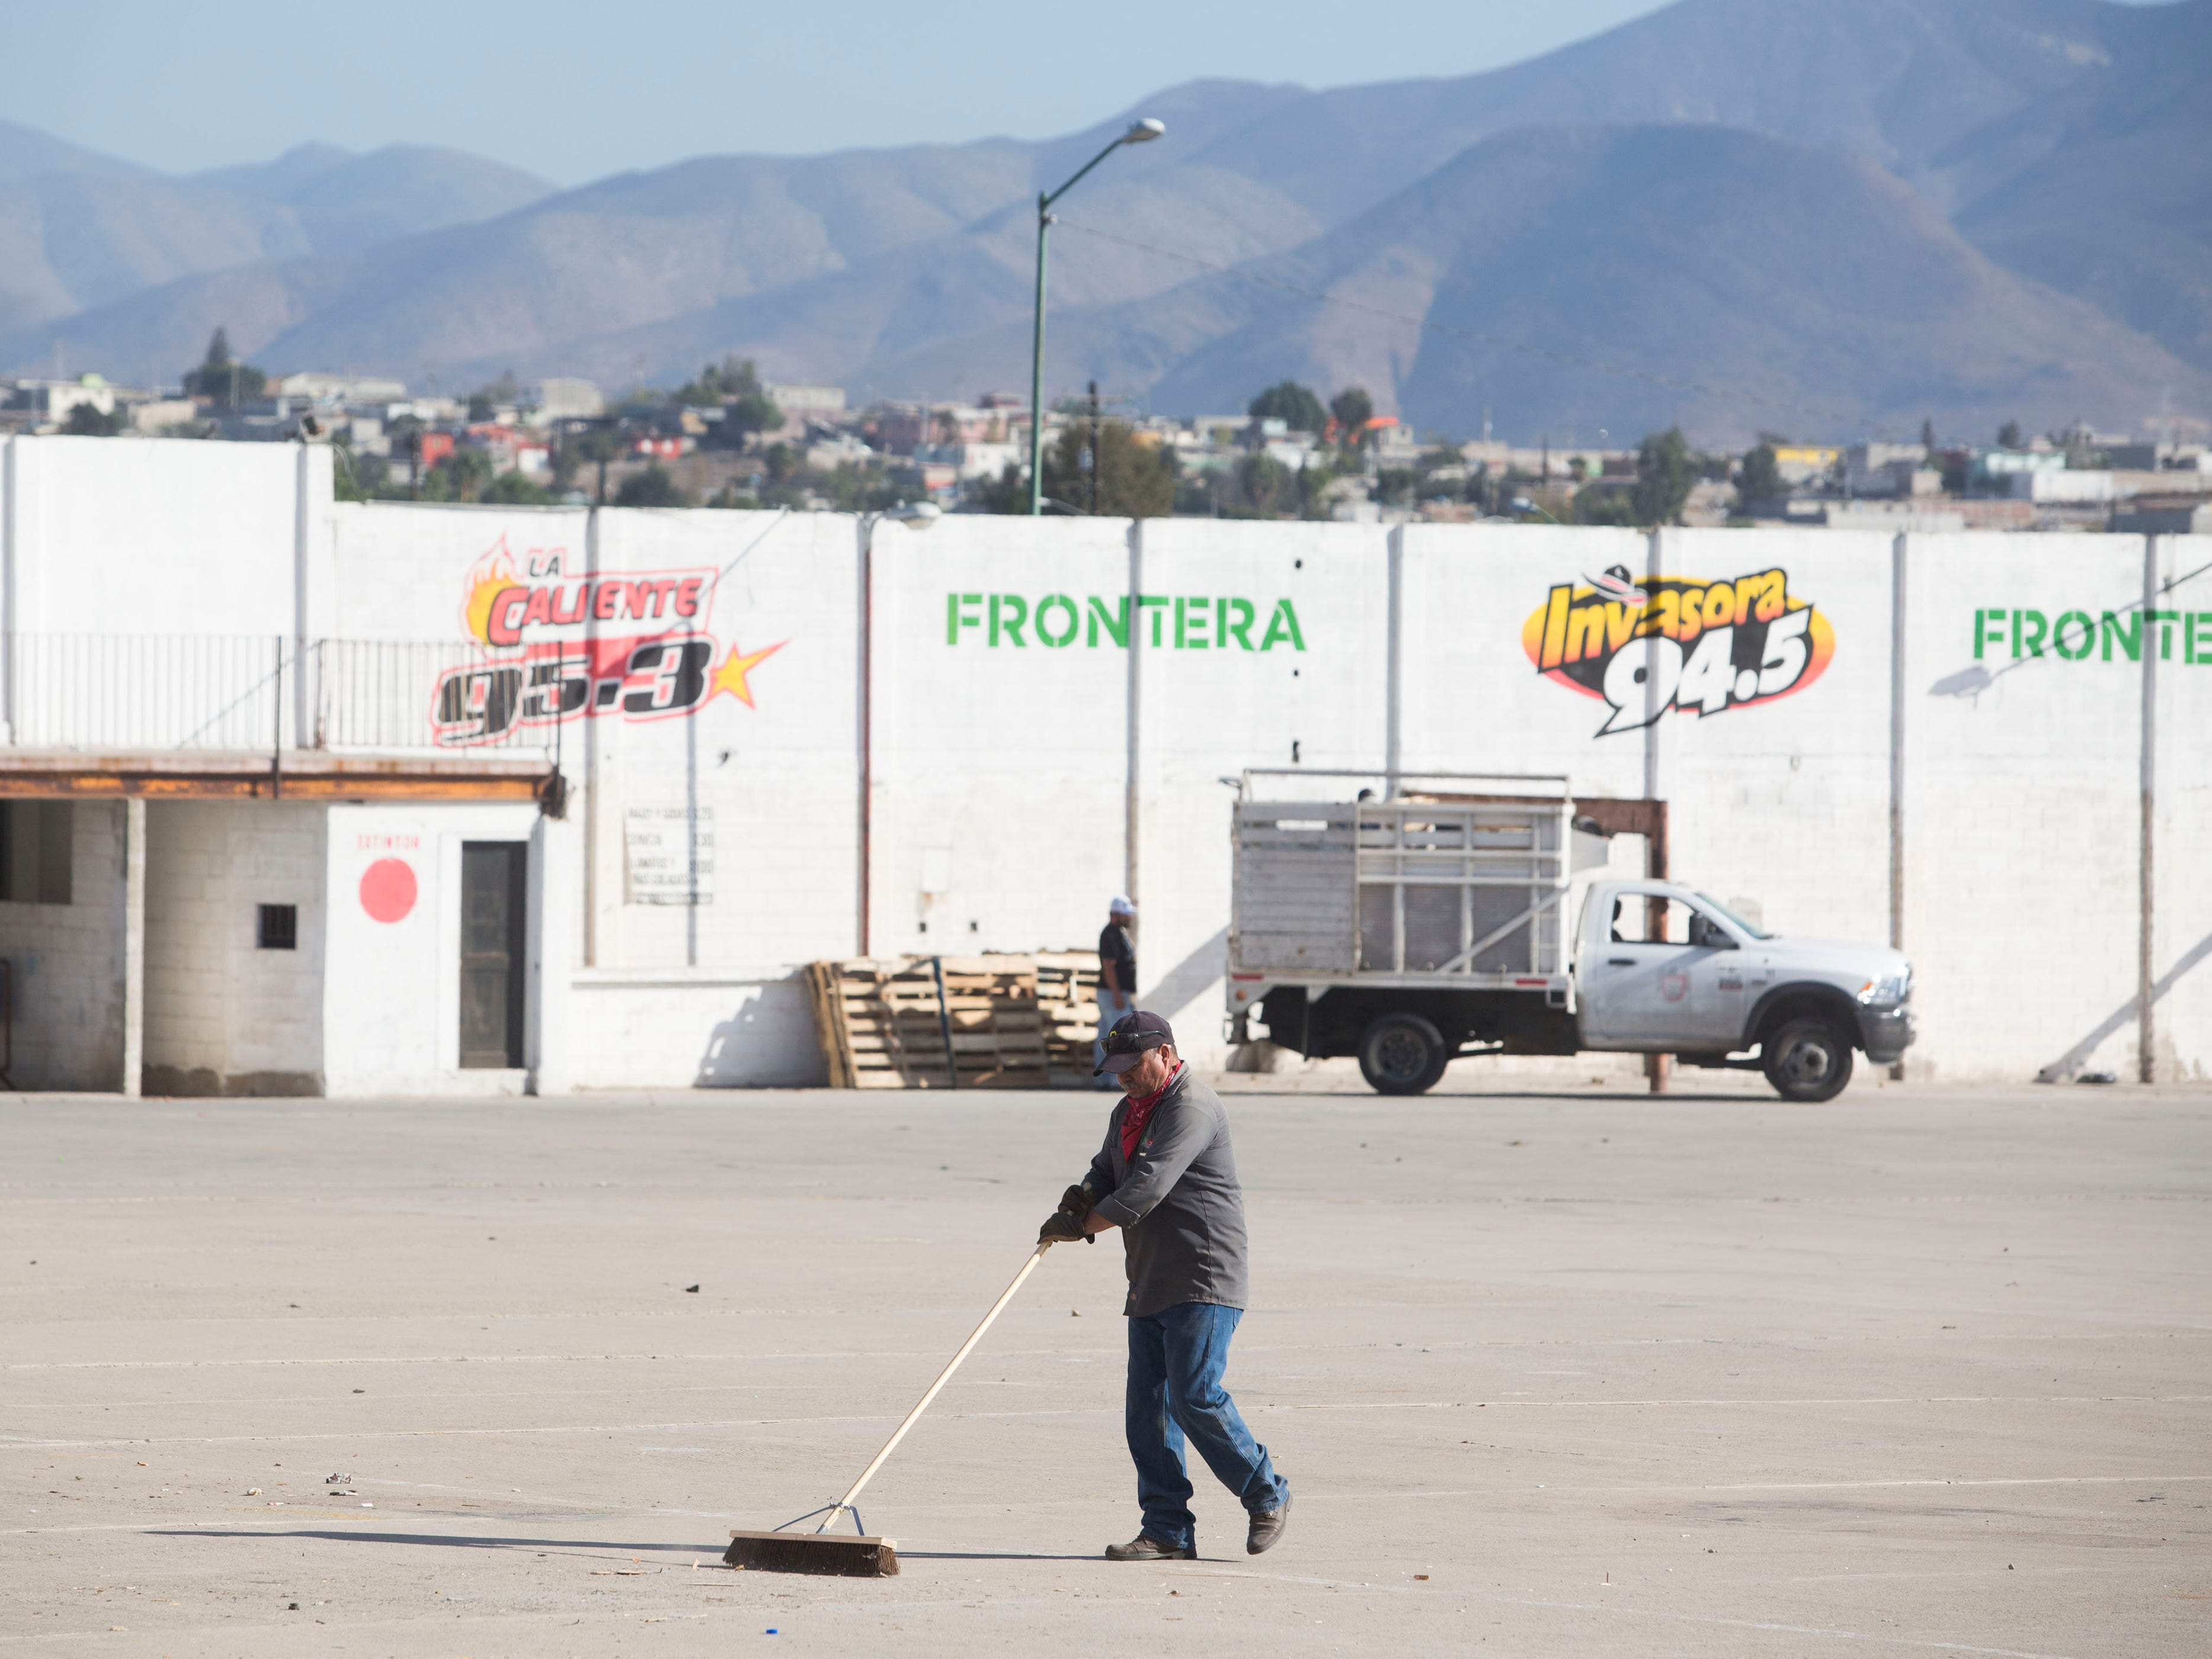 Crews clean up a building where a second shelter may be opened for the caravan migrants on Nov. 28, 2018. If the migrants agree to move to the new shelter, they would be moved 11 kilometers from the San Ysidro Port of Entry to the new shelter.